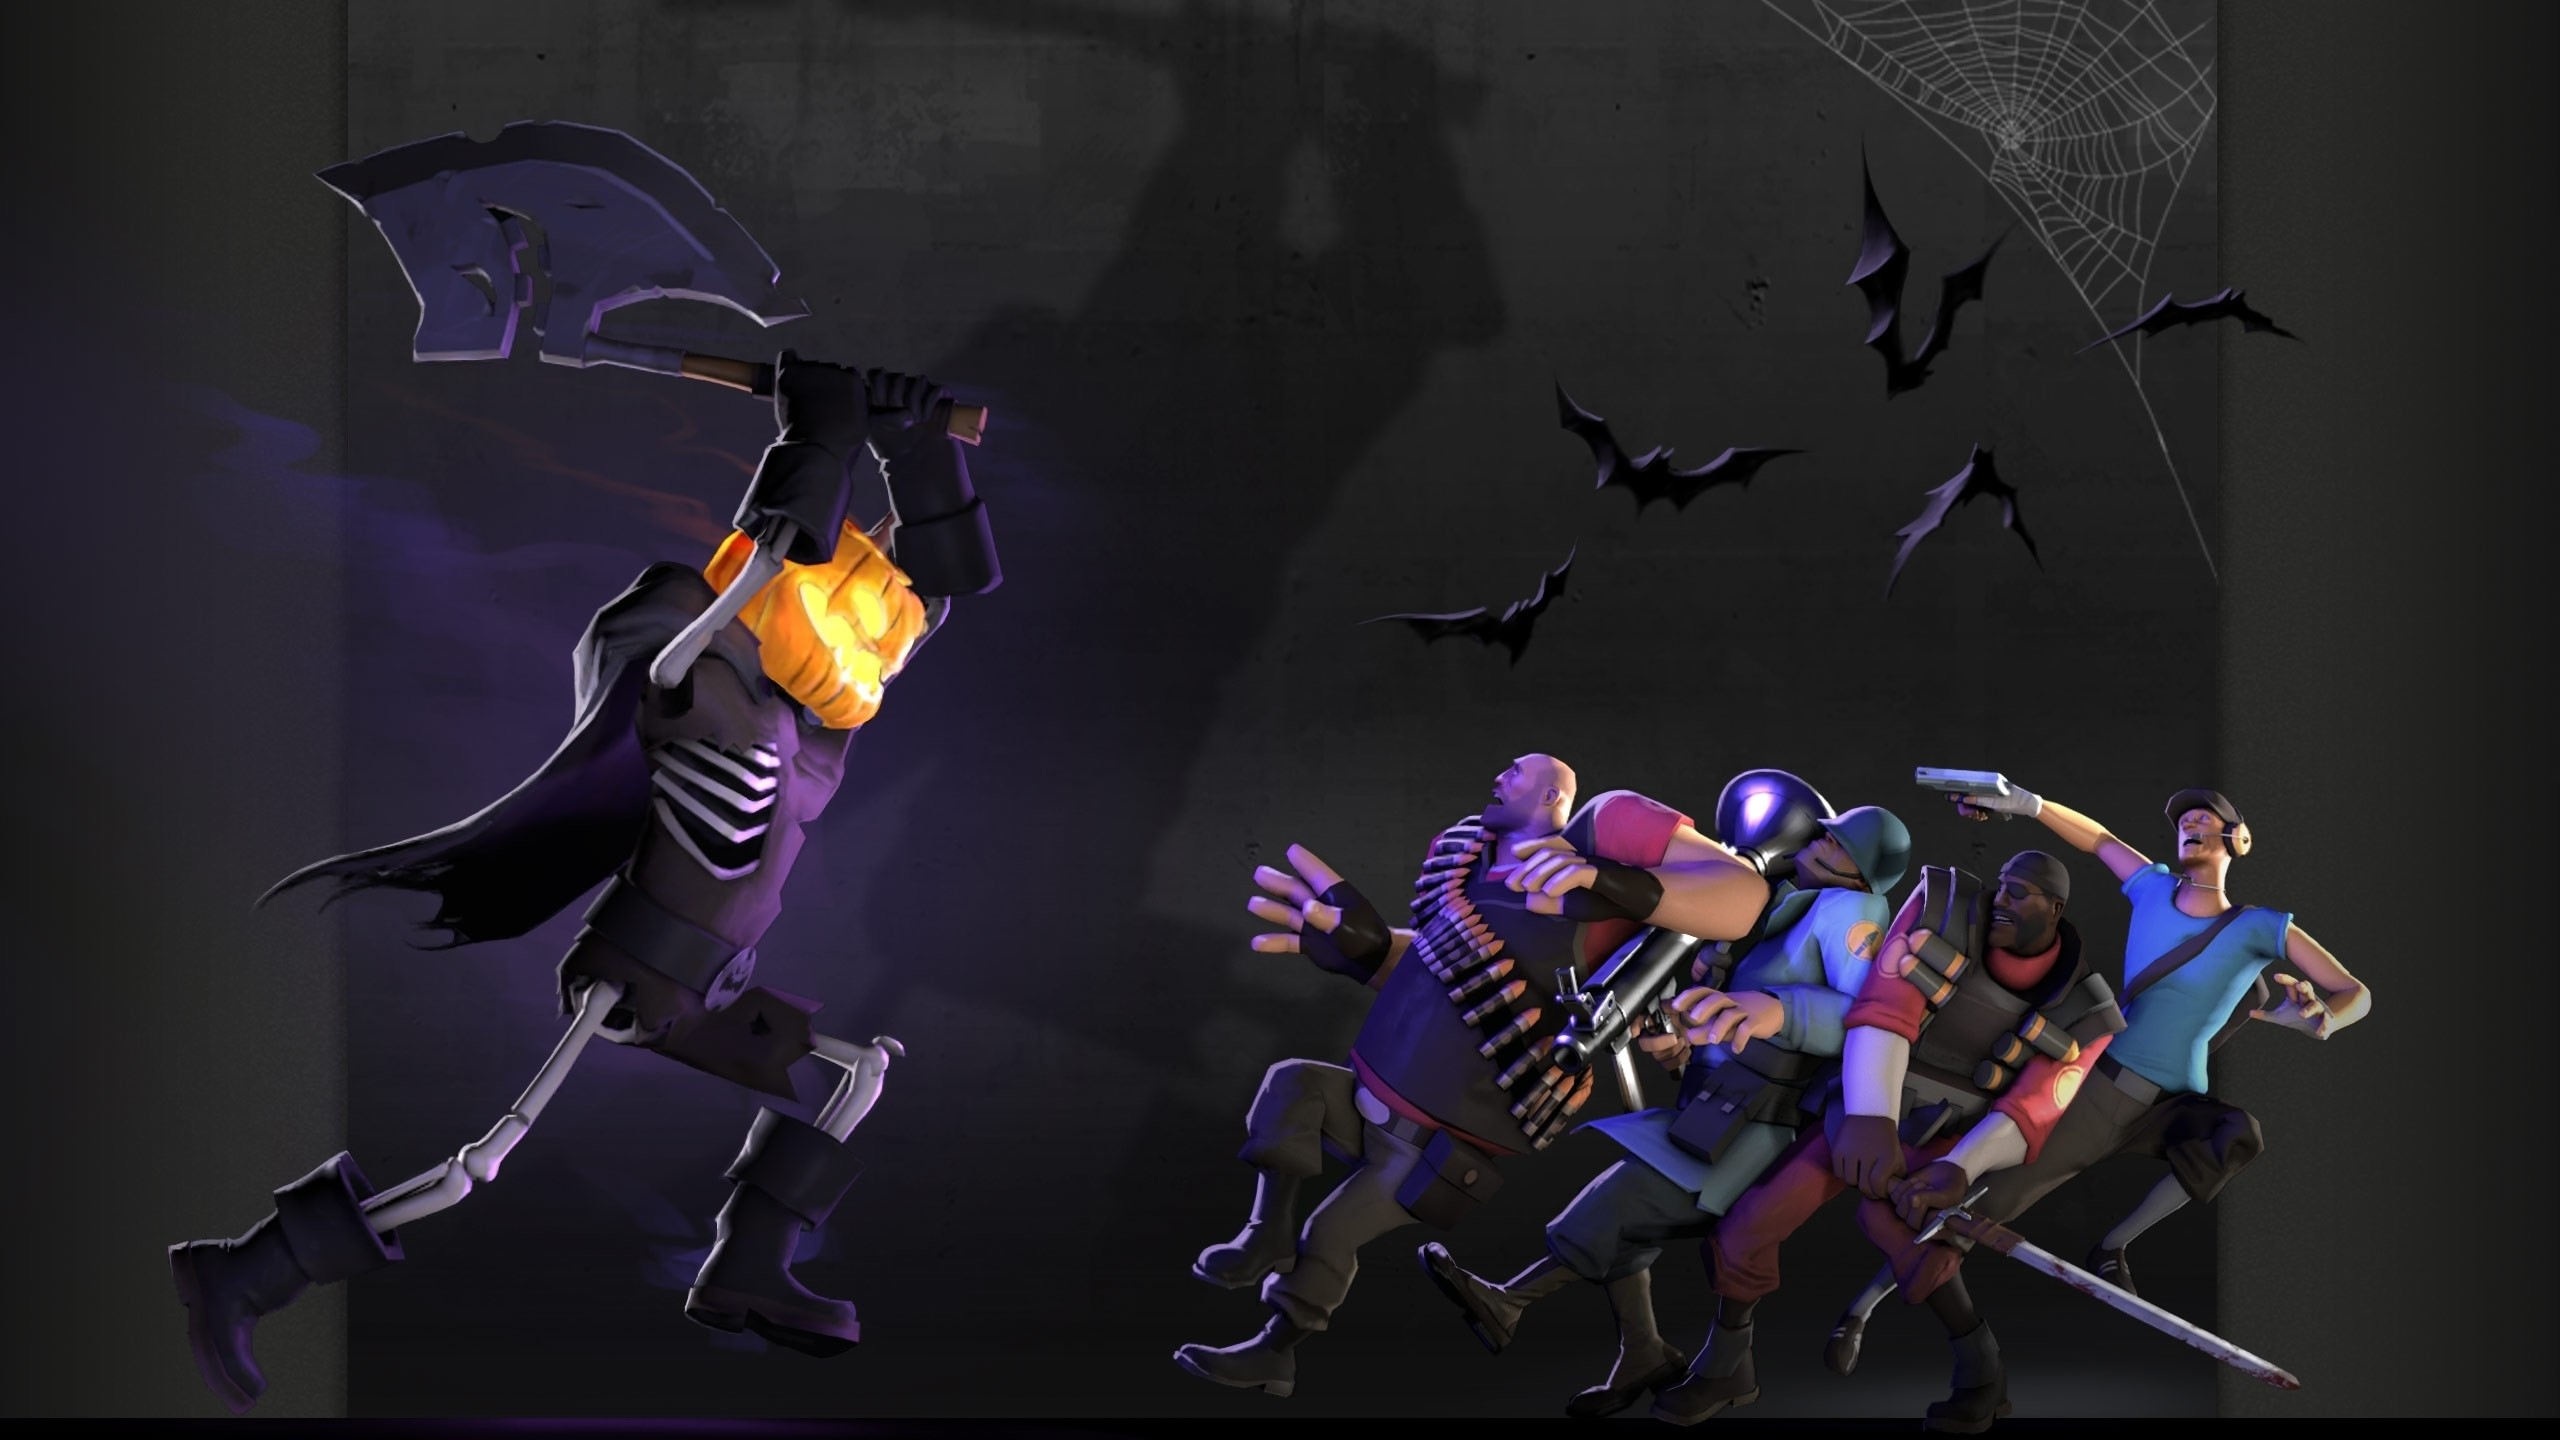 2560x1440 Description: Download Heavy tf2 halloween scout tf2 demoman tf2 team  fortress 2 jack o wallpaper/desktop background in  HD & Widescreen  resolution.